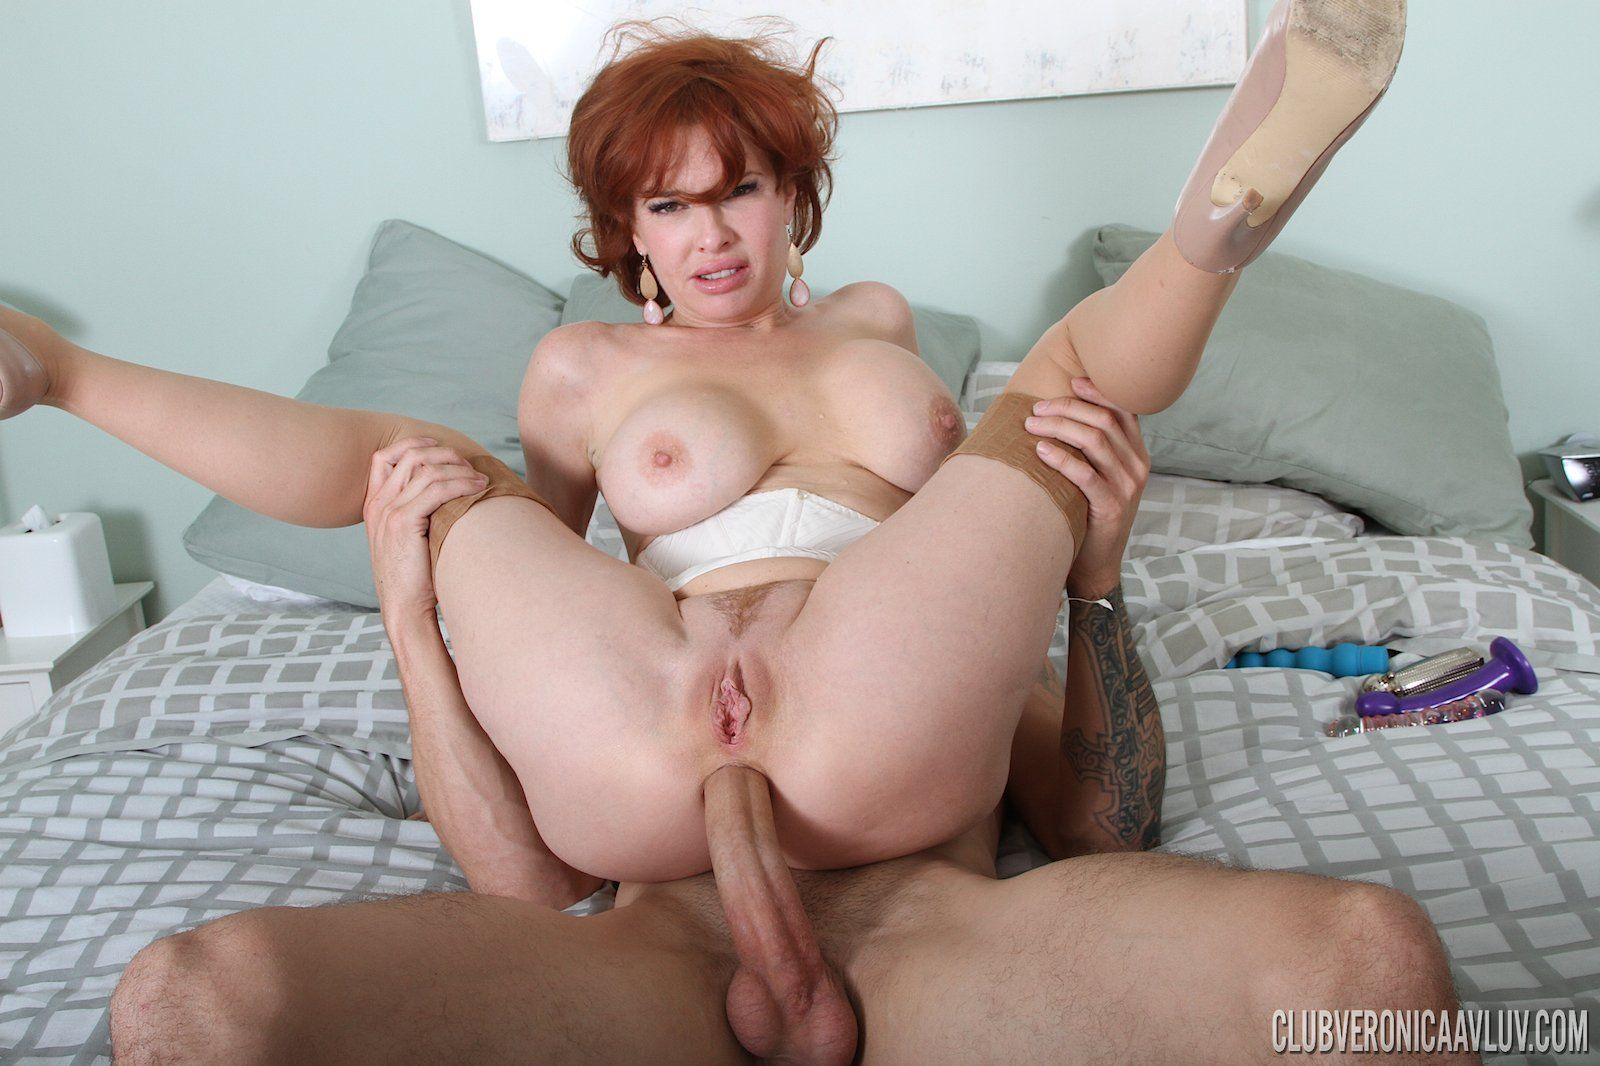 are i want to feel your hot cum on my shaved pussy joi sorry, that has